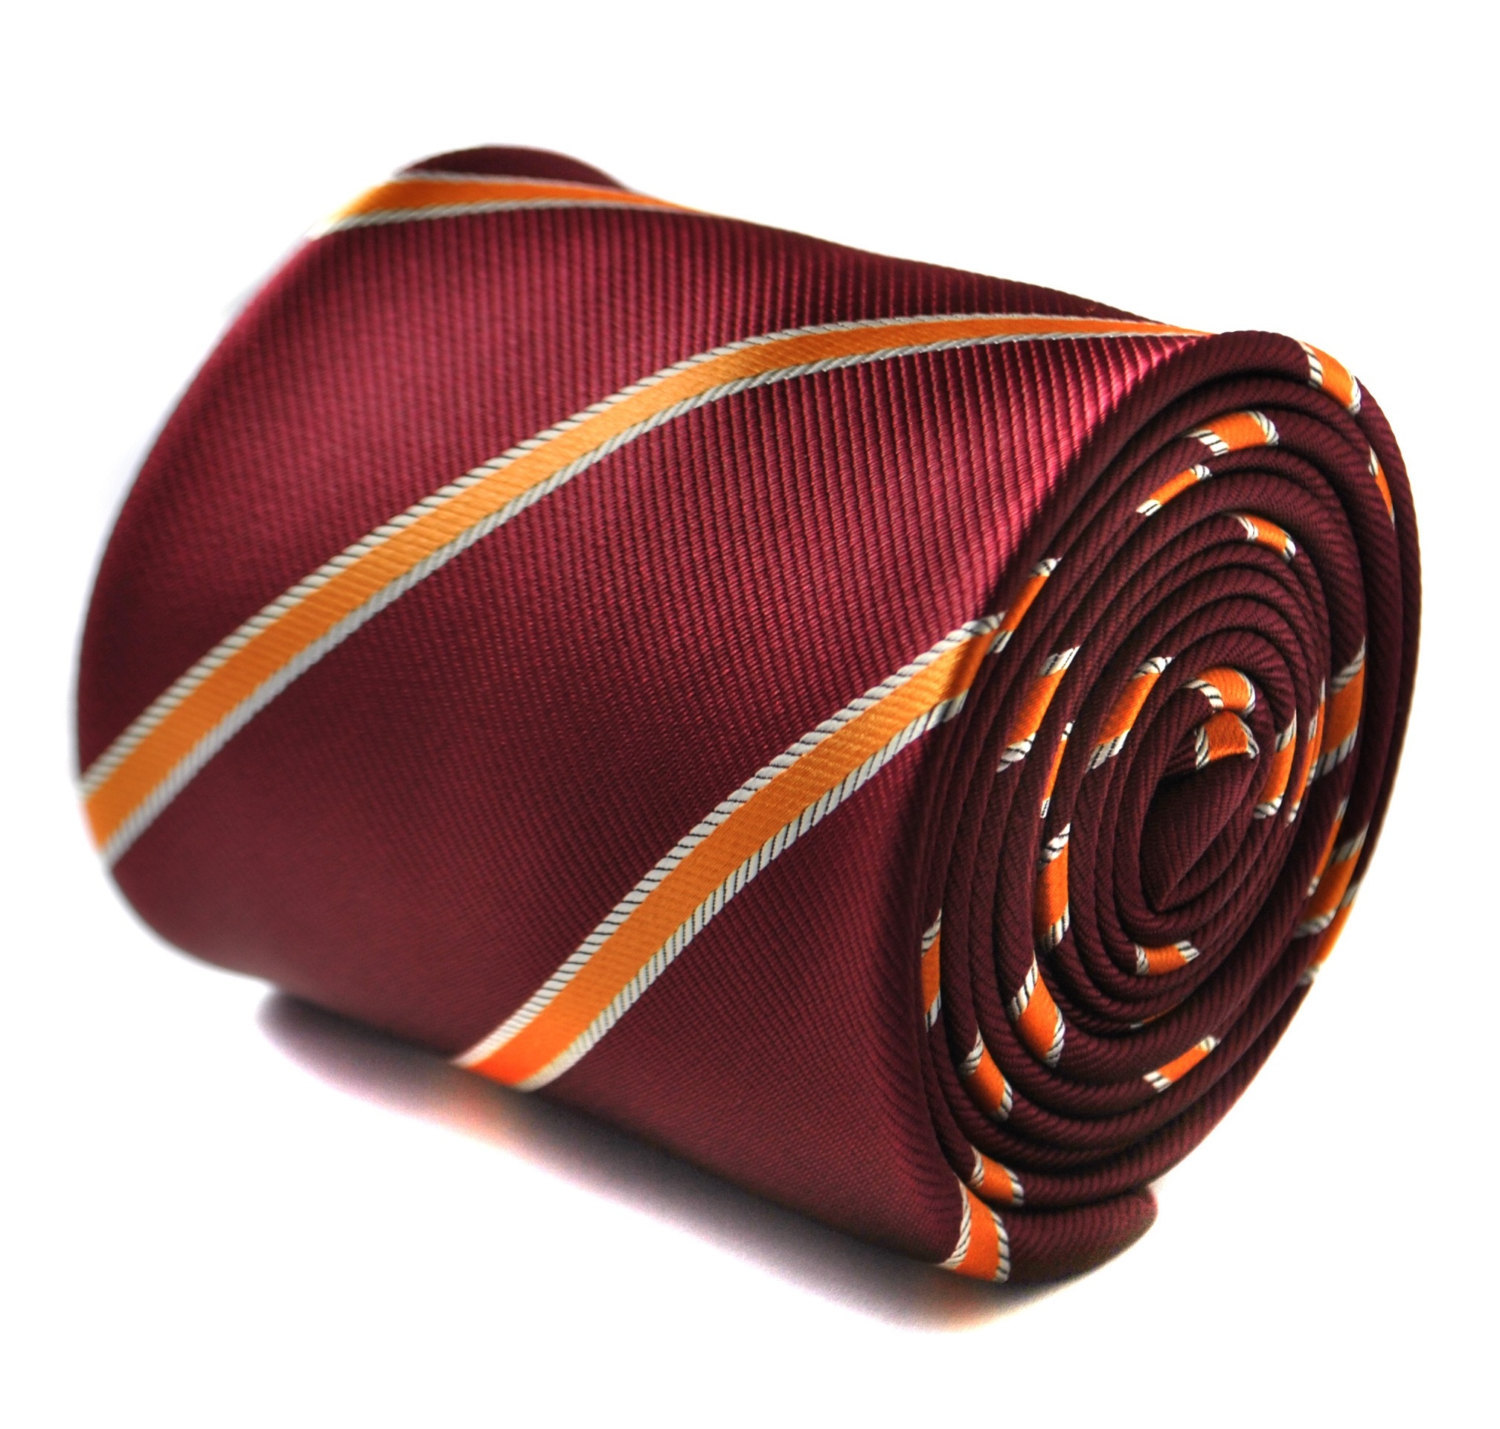 maroon and orange club striped tie with signature floral design to the rear by F